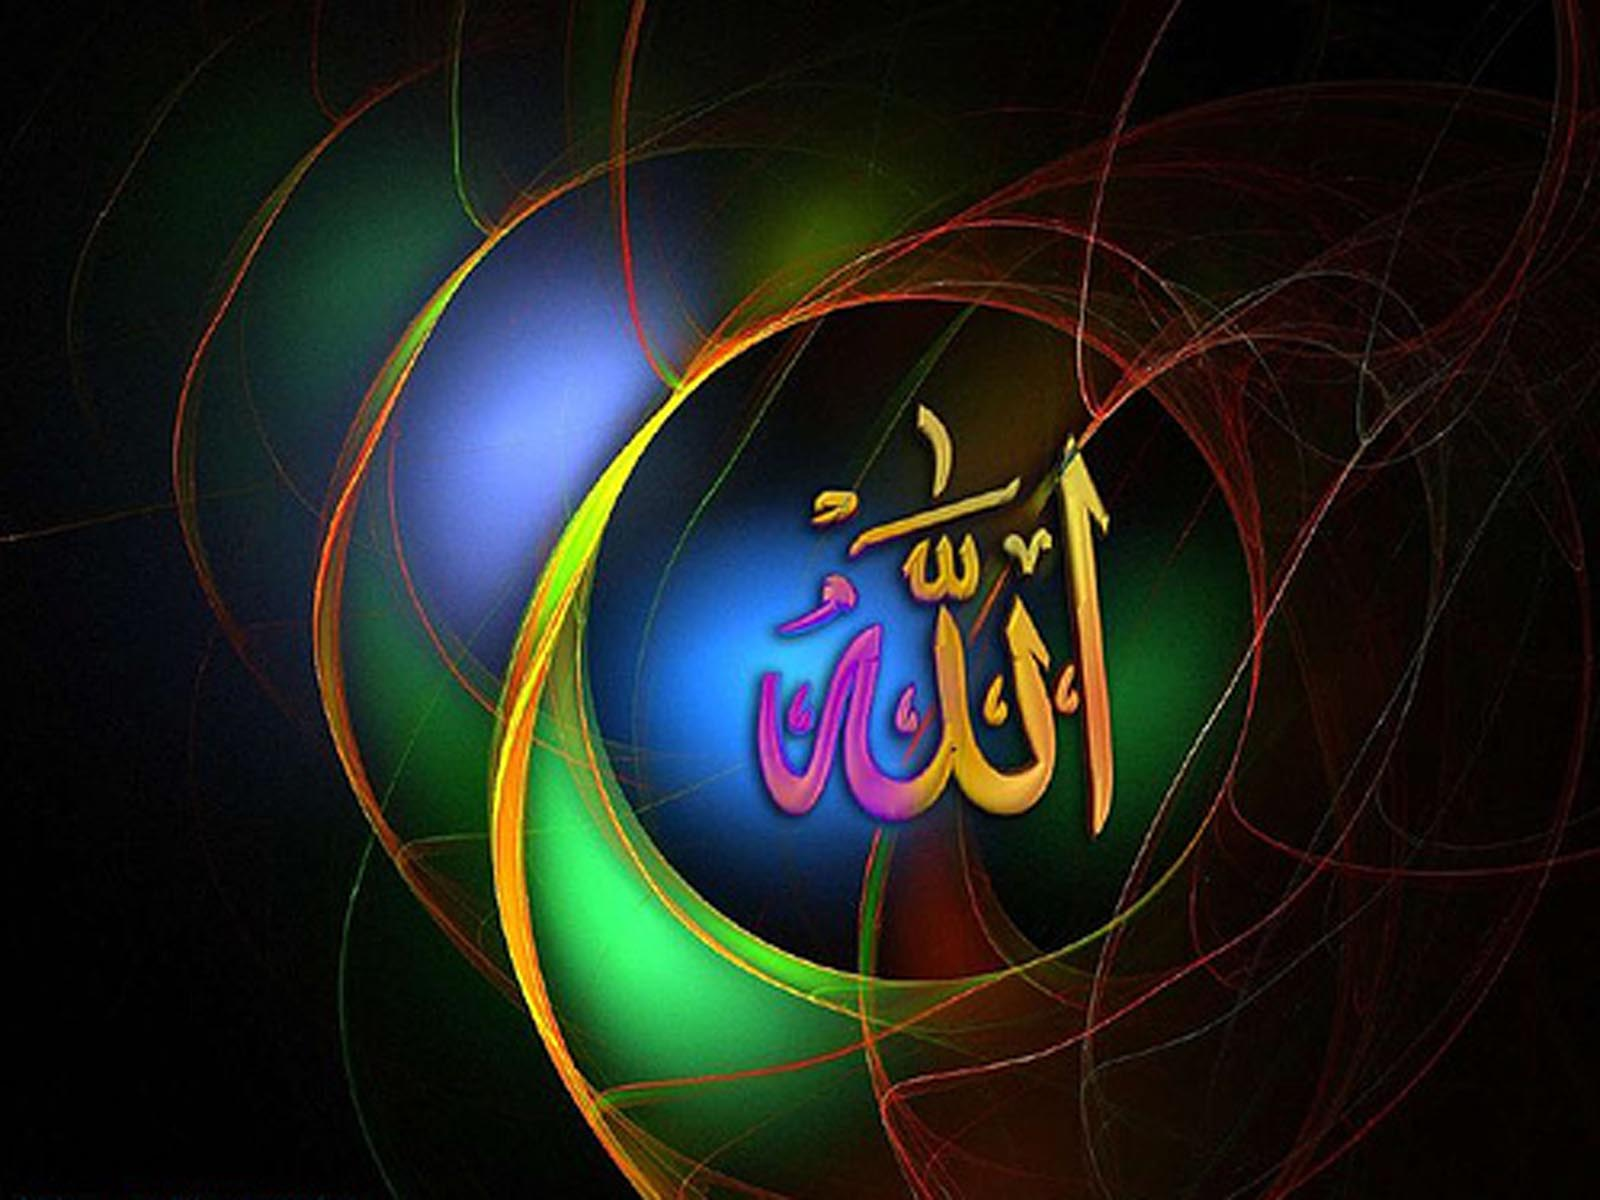 Wallpaper Allah 3d Download Wallpaper DaWallpaperz 1600x1200